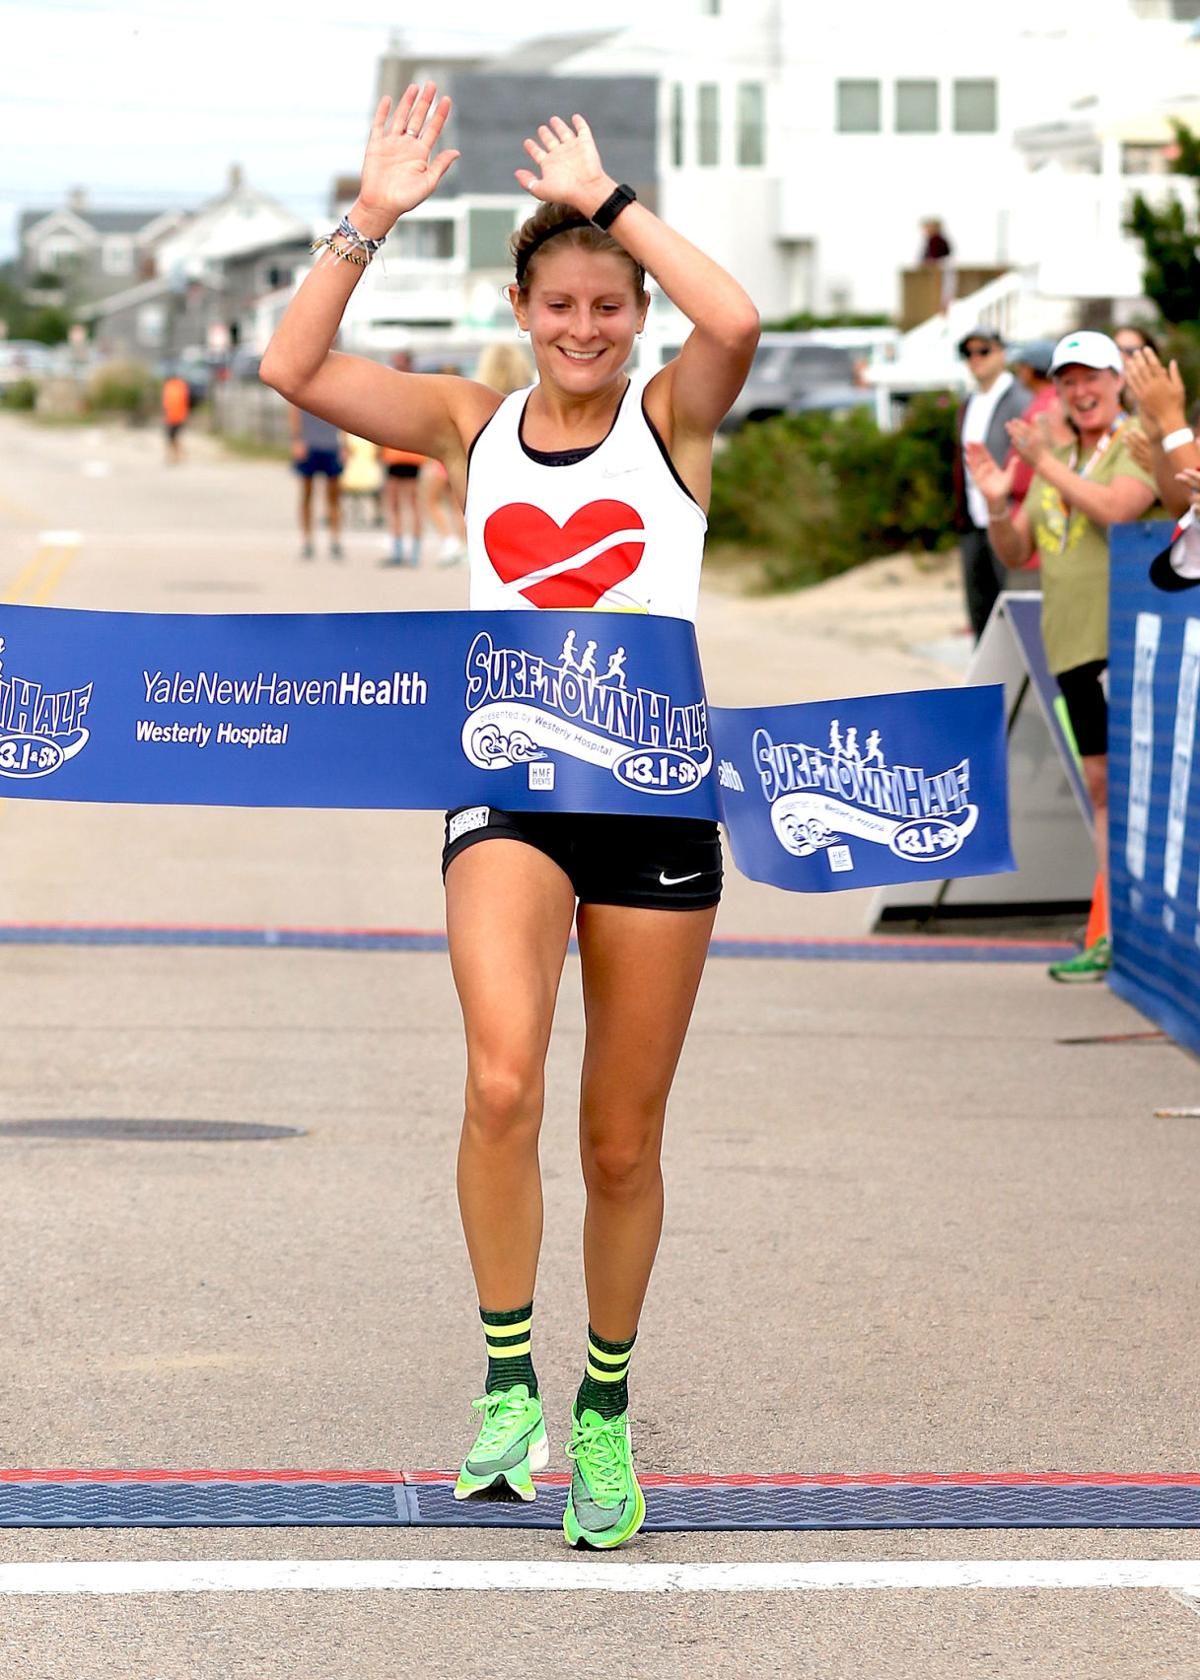 Amy Tortorello, 28, of Brookline, Massachusetts, was the first female runner across the line in 1:20:52, good for 13th overall. | Jackie L. Turner, Special to The Sun